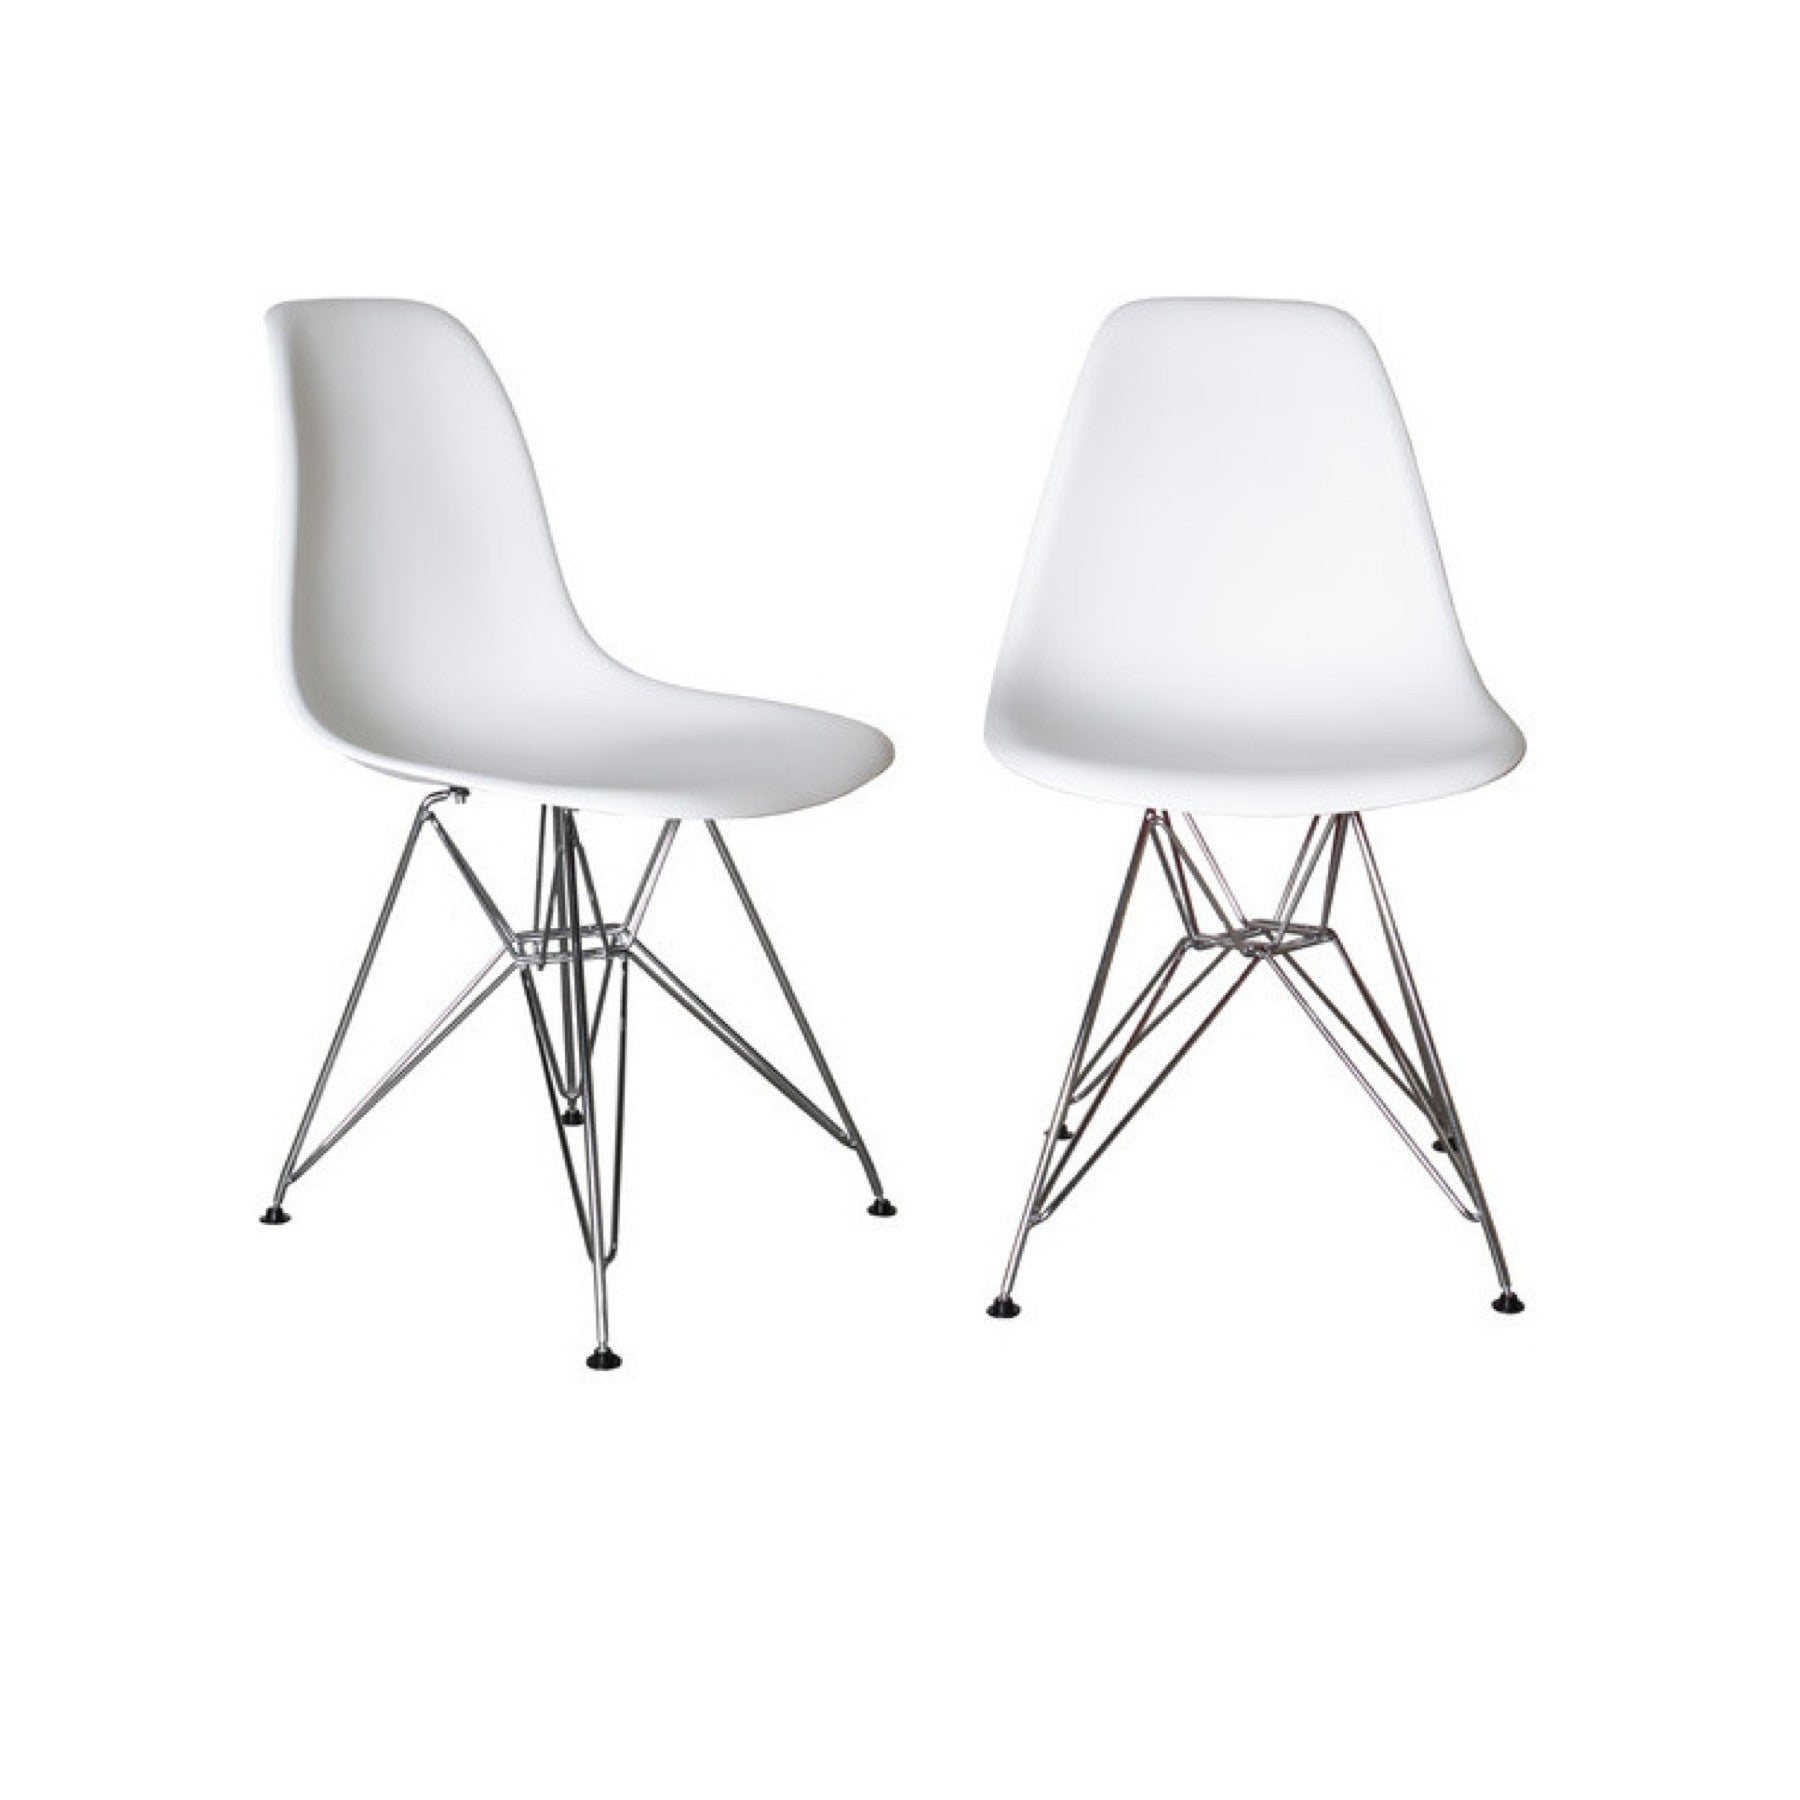 Enjoyable Tr20009 Charles Eames Style Dsr Chair Tabula Rasa Onthecornerstone Fun Painted Chair Ideas Images Onthecornerstoneorg